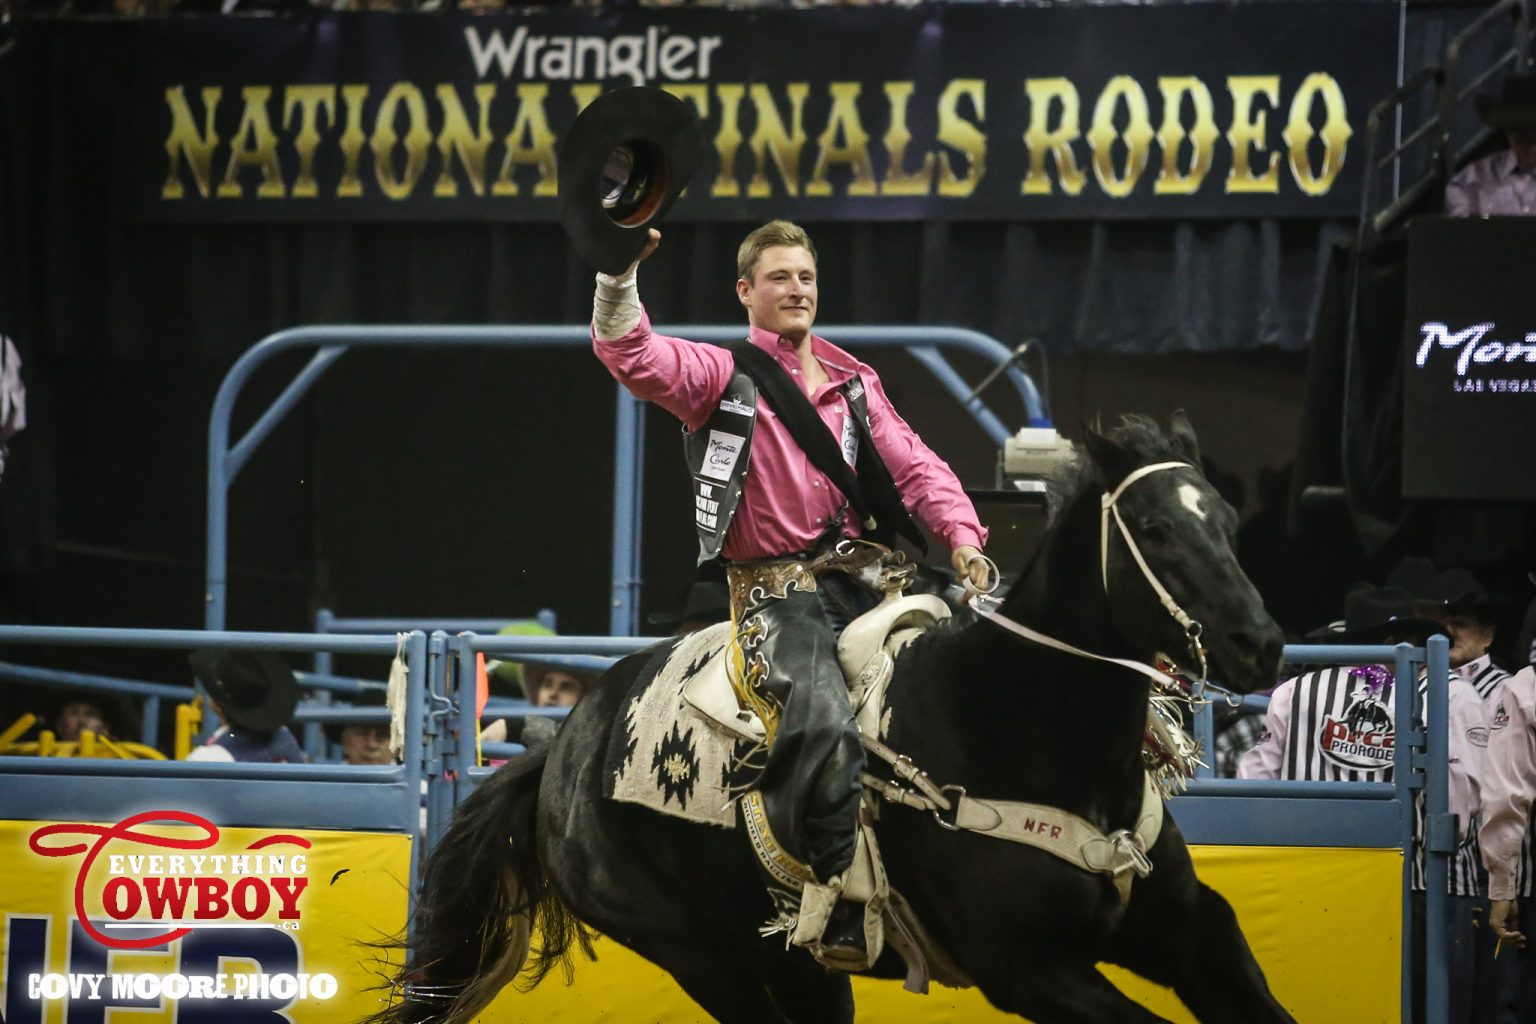 But in the Bareback Riding there was no one better than Jake Vold, again eclipsing the field with an 89 point score atop Hi Lo ProRodeo's Wilson Sanchez.